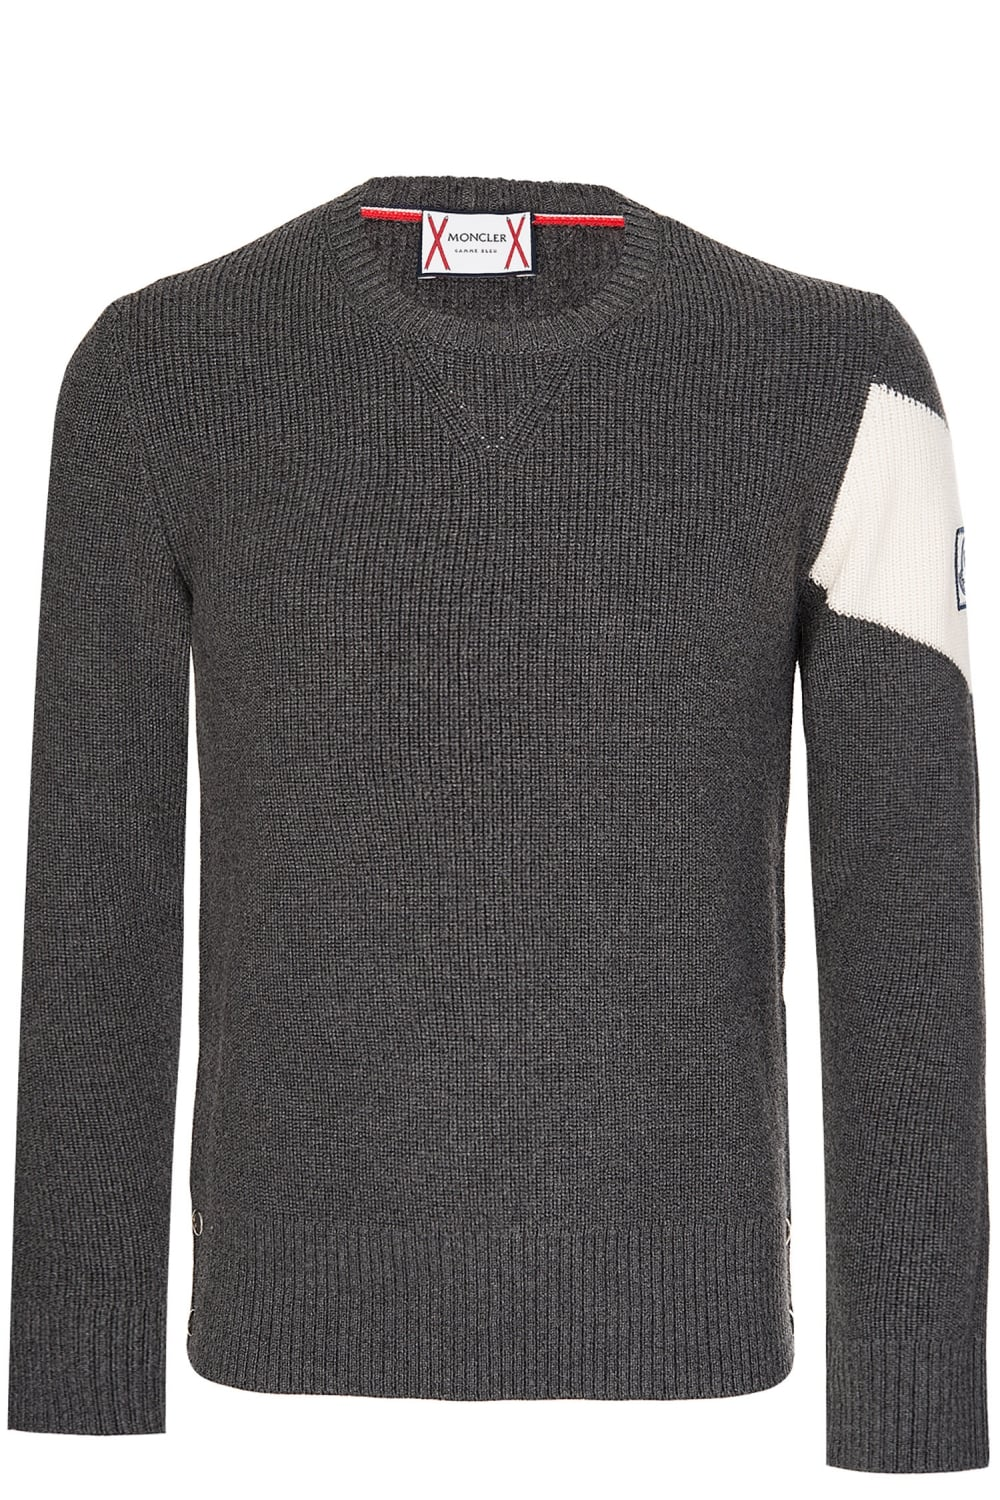 1287ee78b MONCLER Knitted Angle Stripe Jumper Charcoal - Clothing from Circle ...